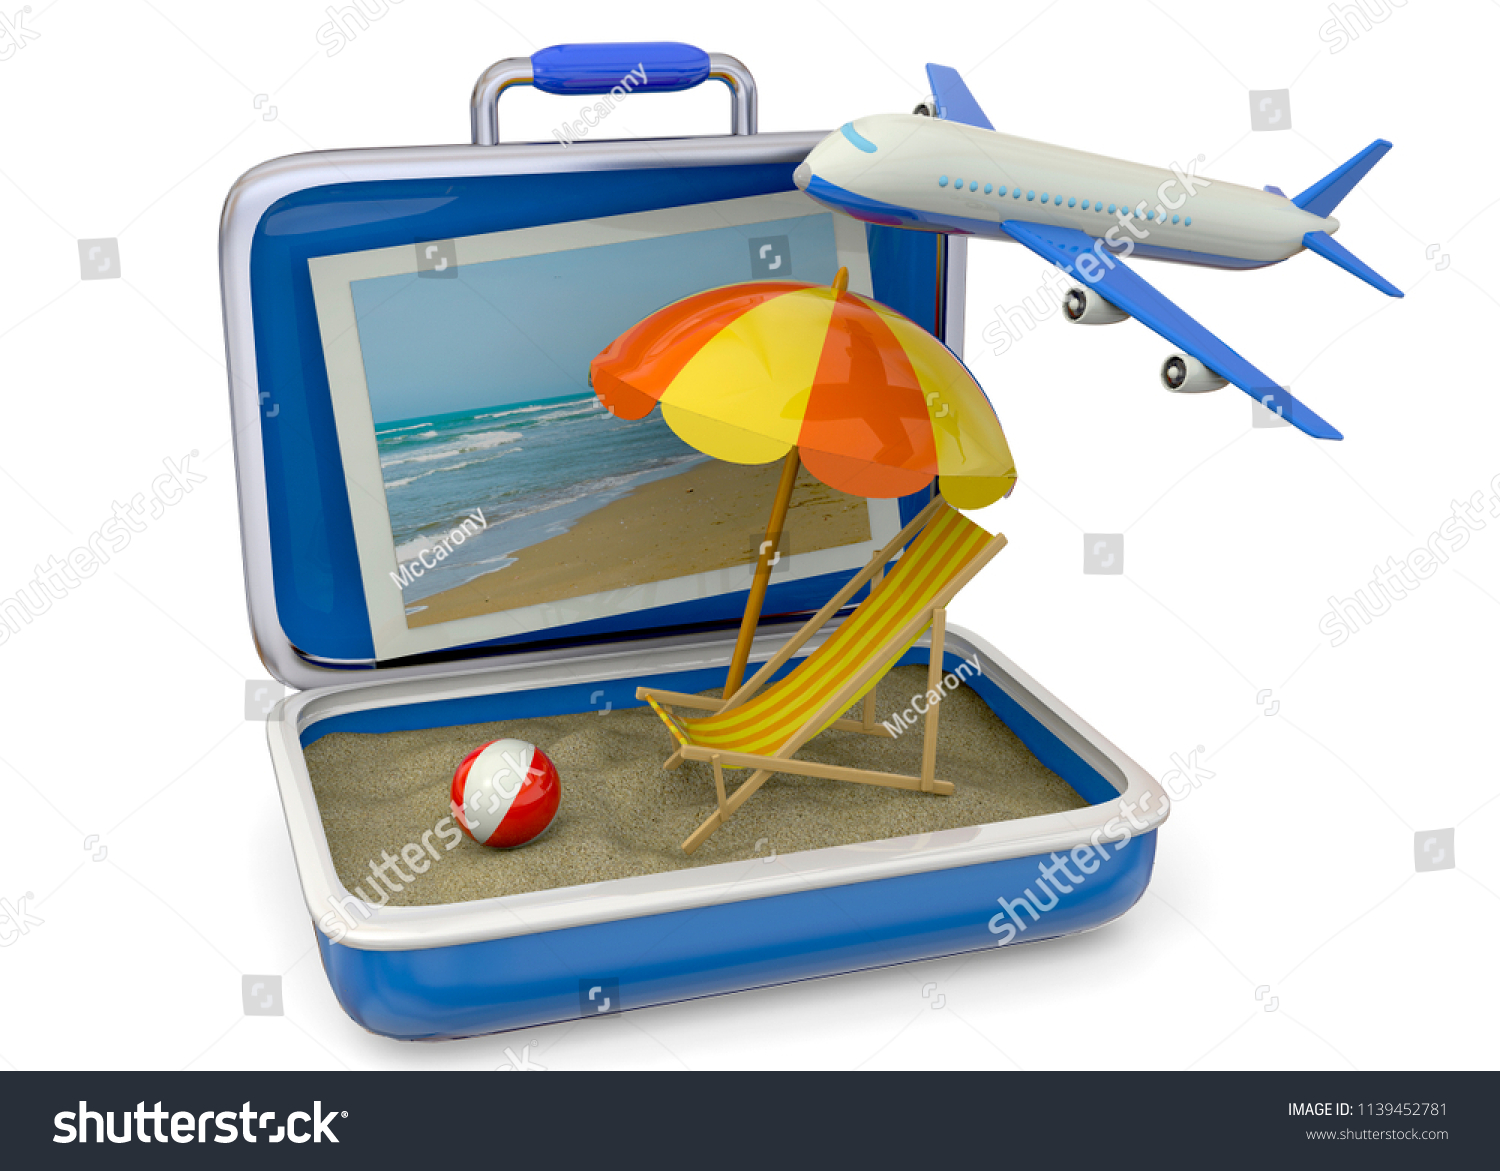 air travel beach chairs best chair hammock stand umbrella life buoy suitcase stock illustration royalty airplane and sand 3d